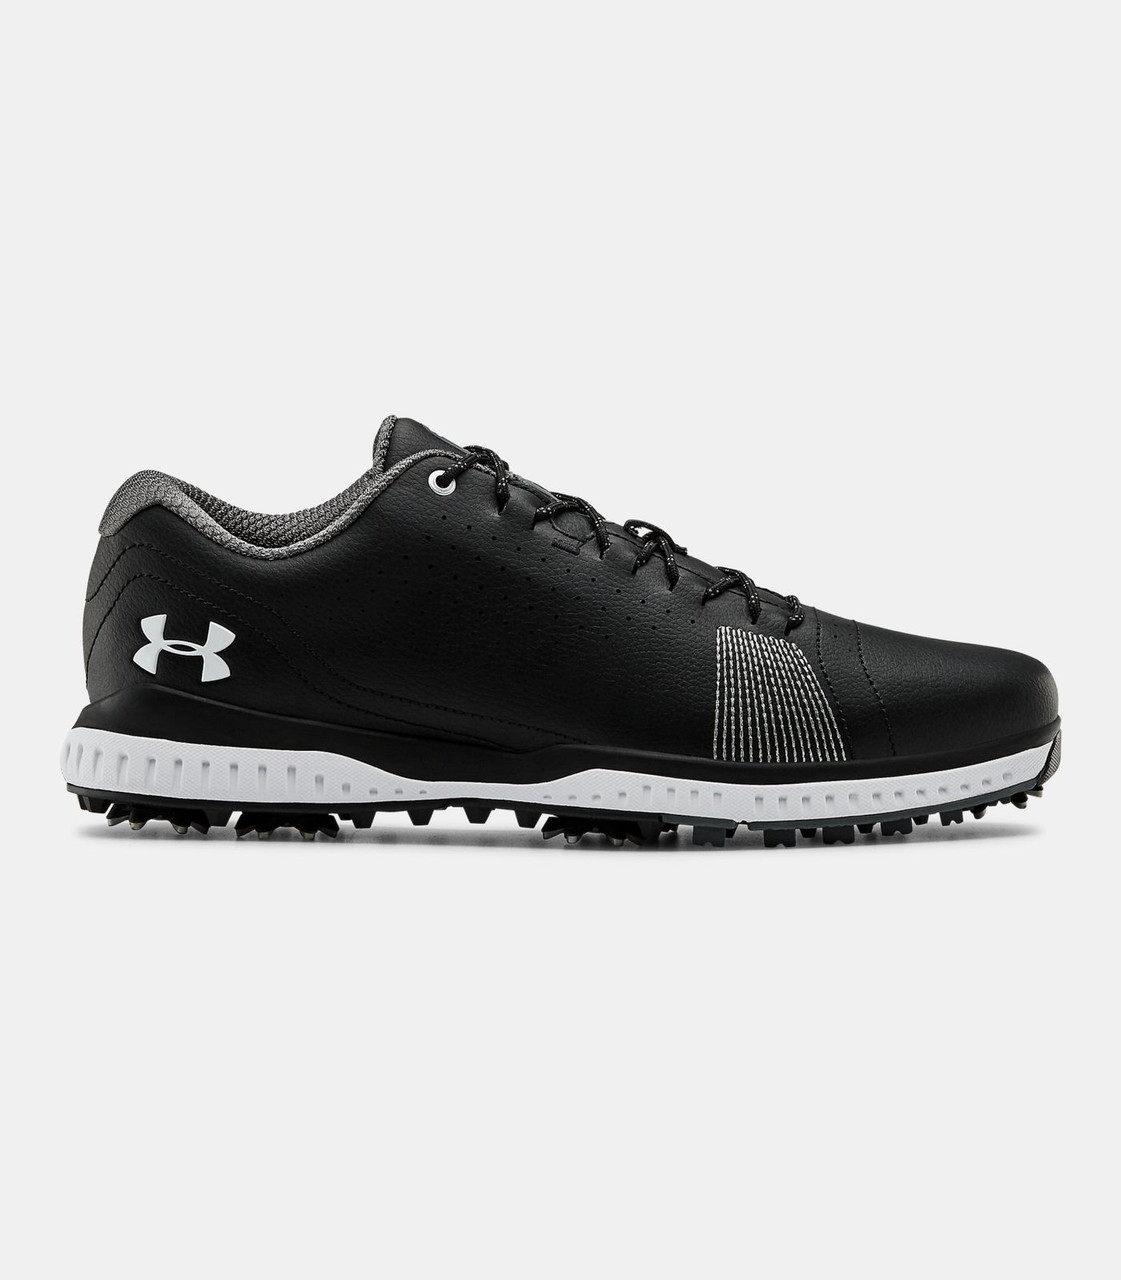 Under Armour Fade RST 3 Men's Golf Shoes